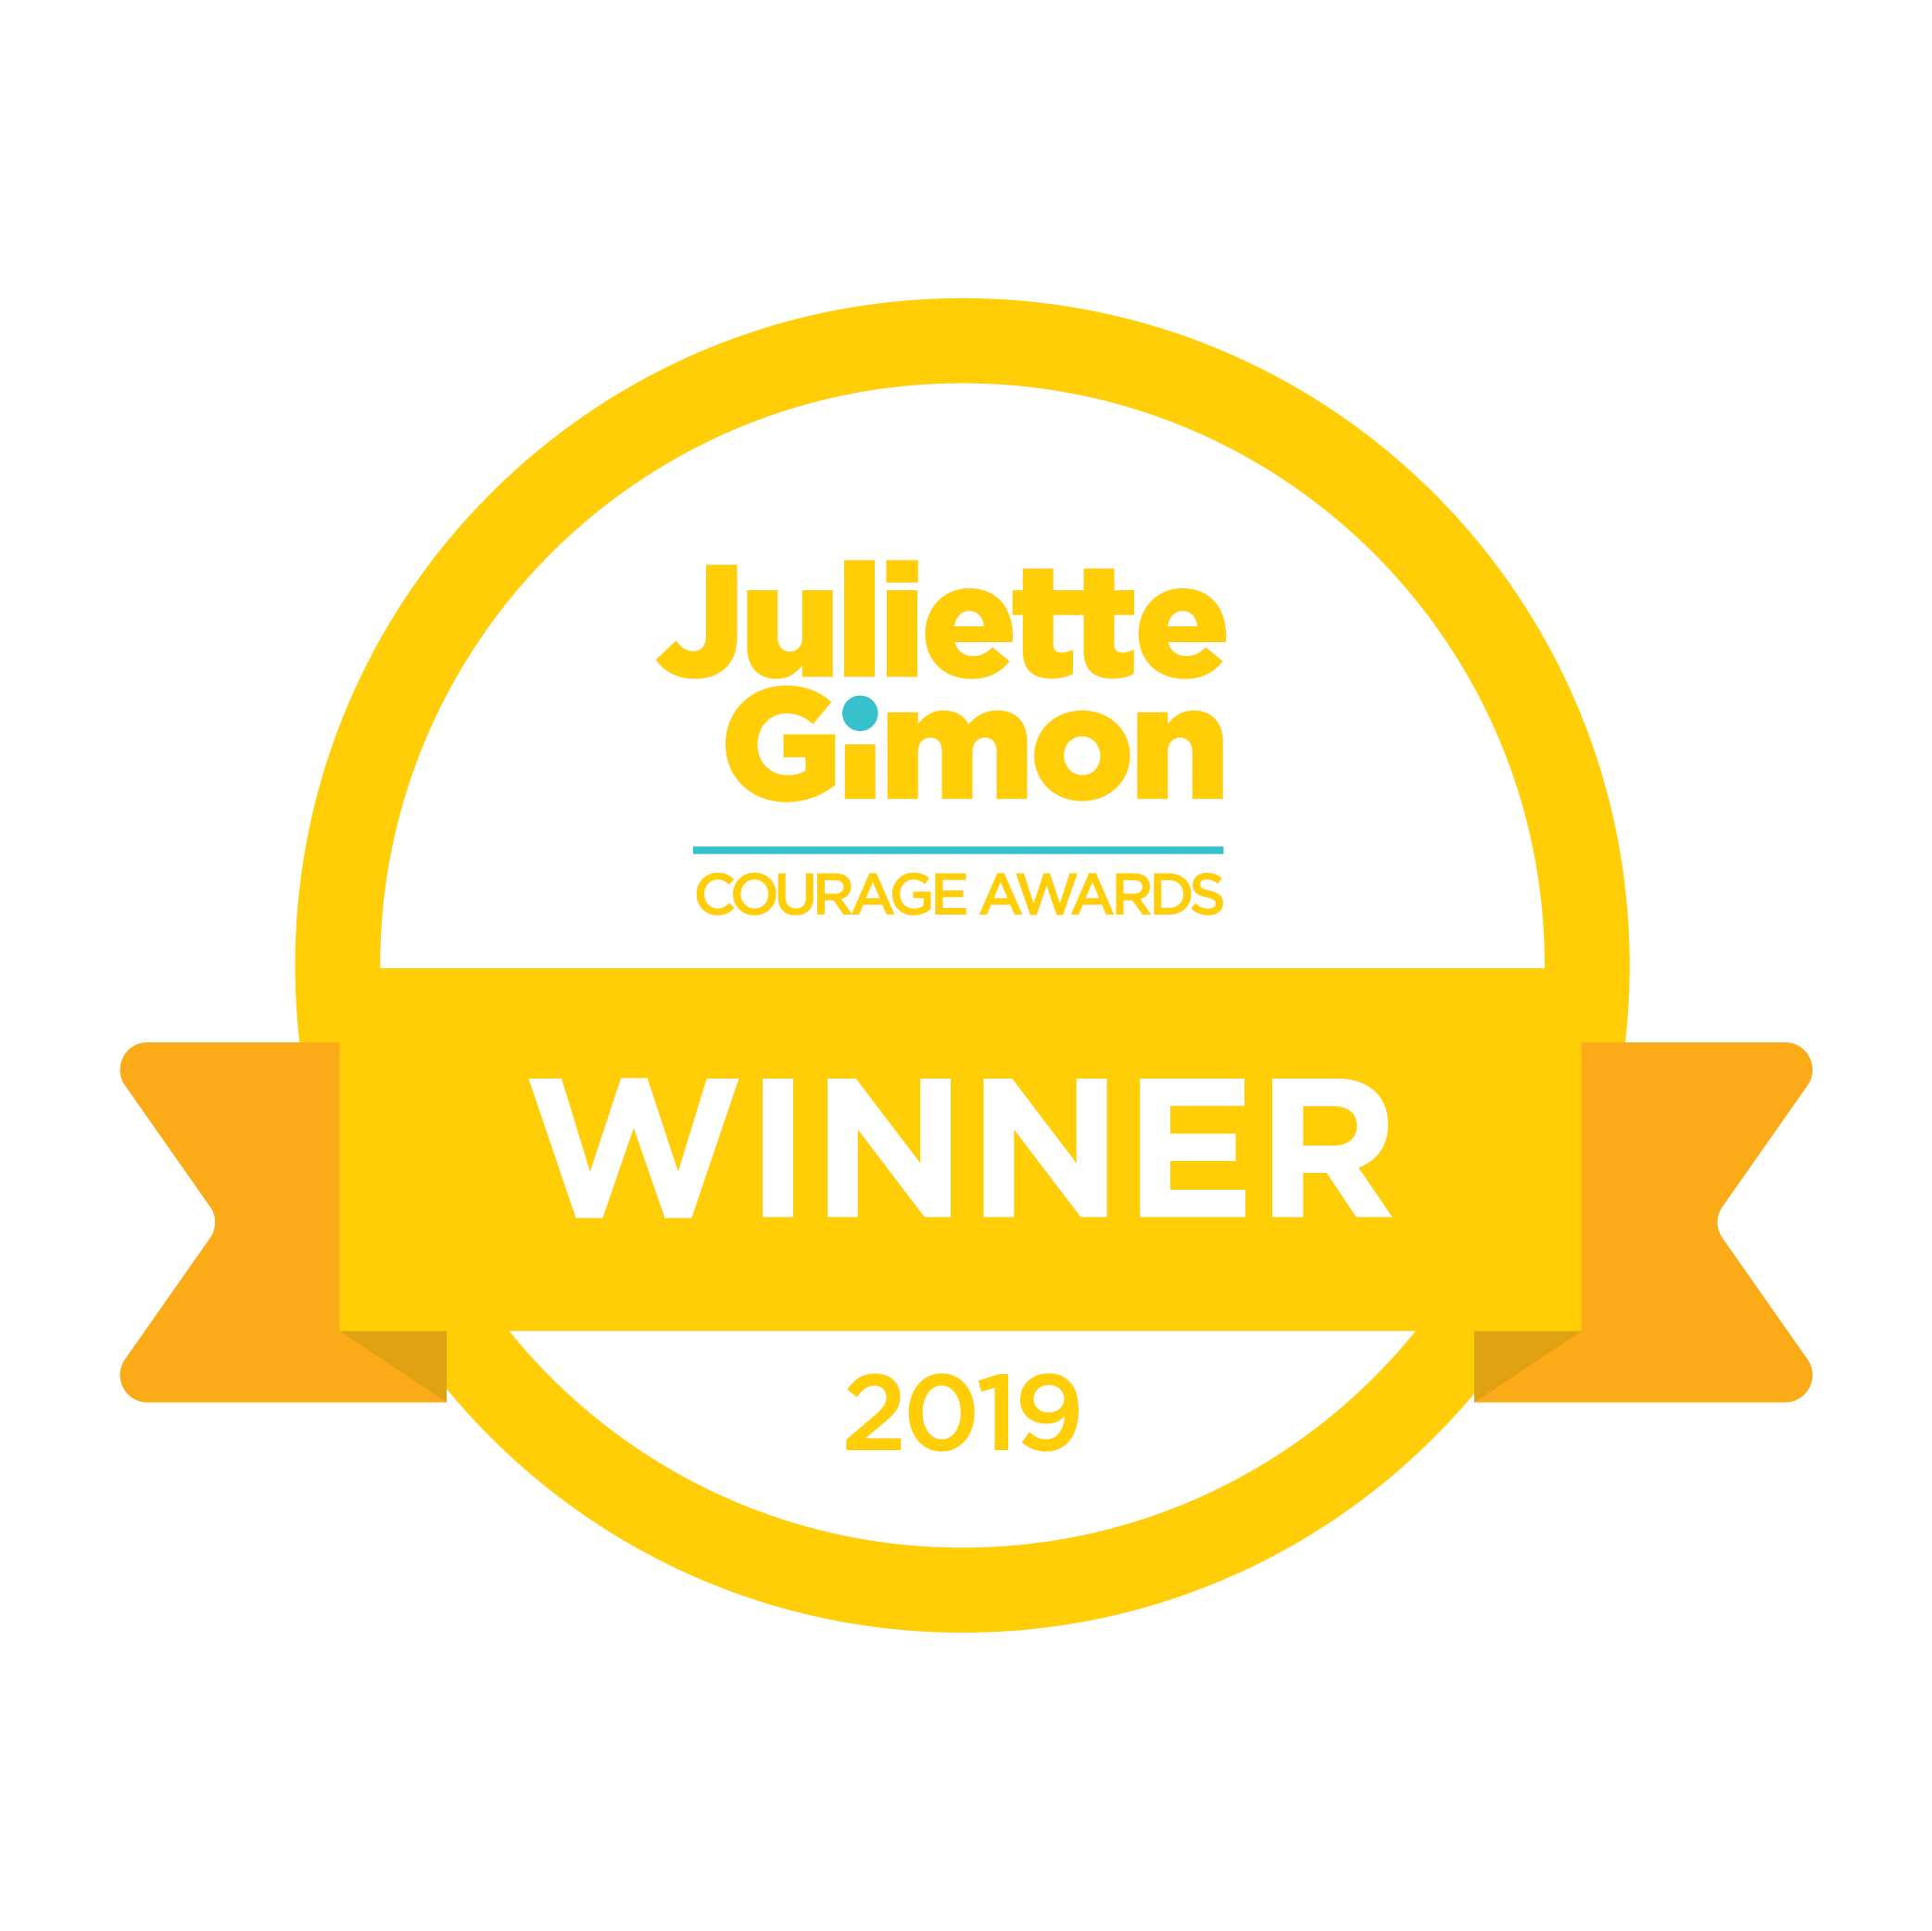 jg-courage-awards-winner